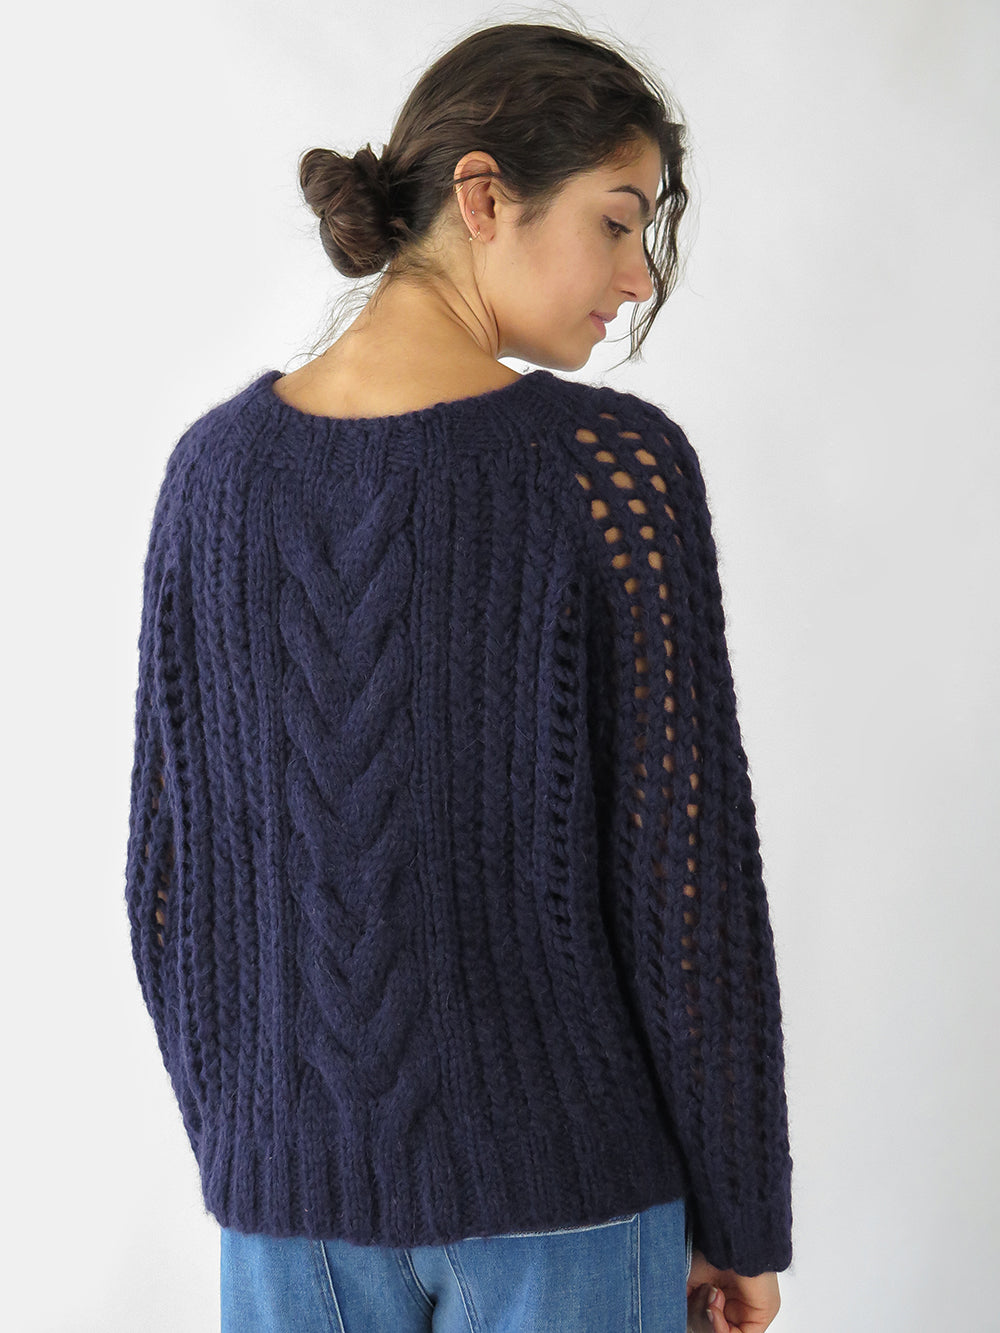 fisherwoman sweater in navy